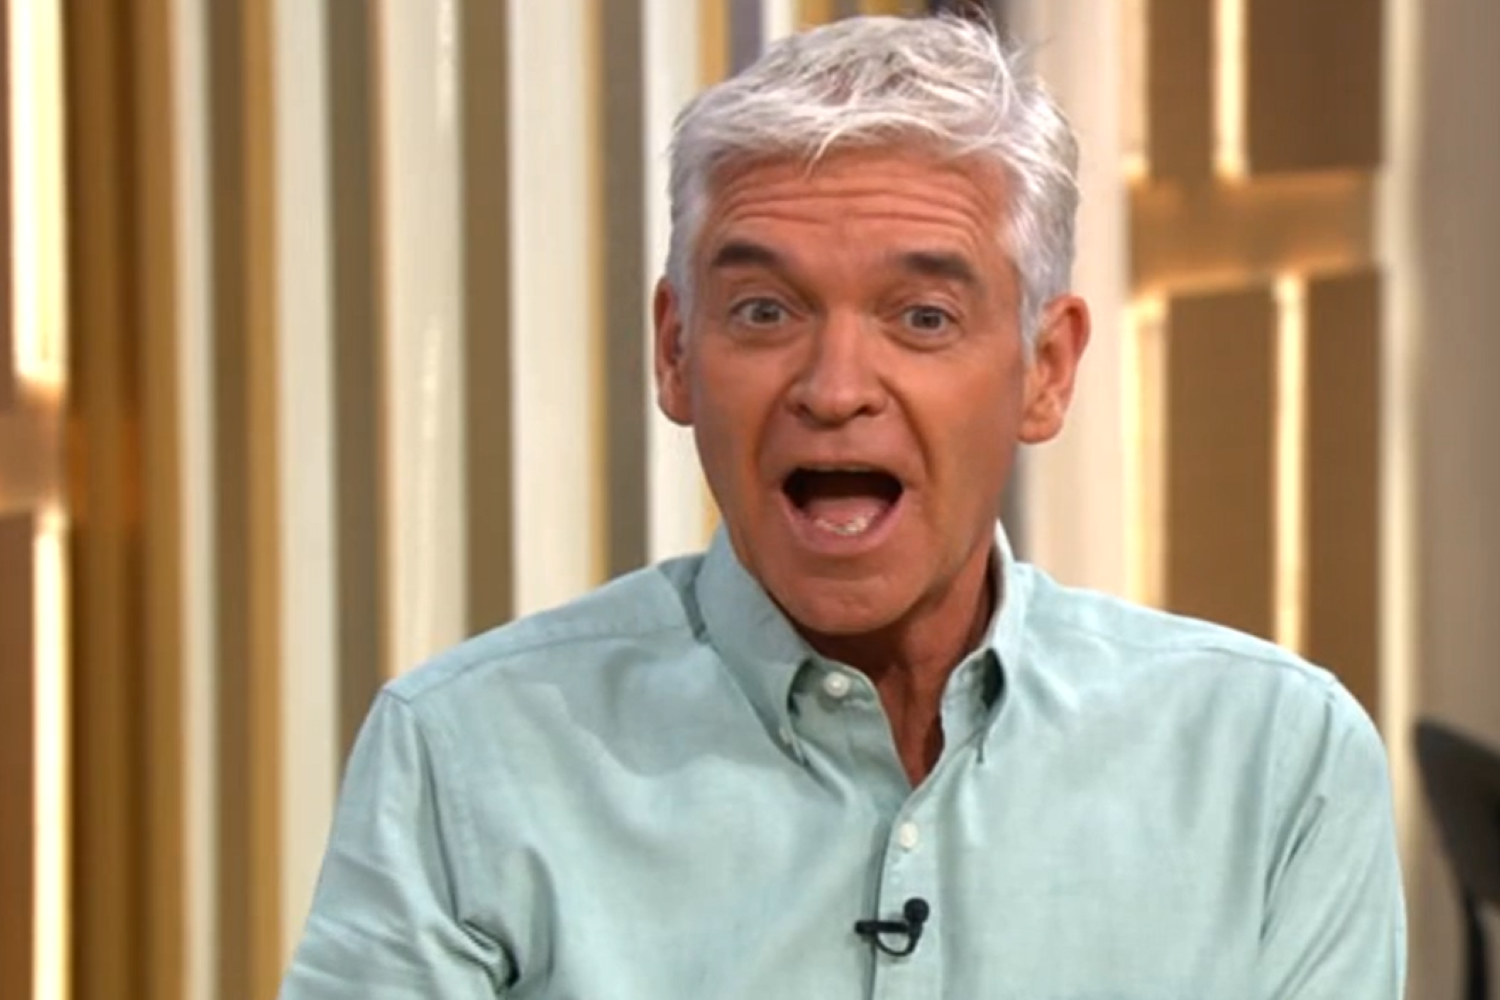 Phillip Schofield and Holly Willoughby get giggles during serious This Morning segment